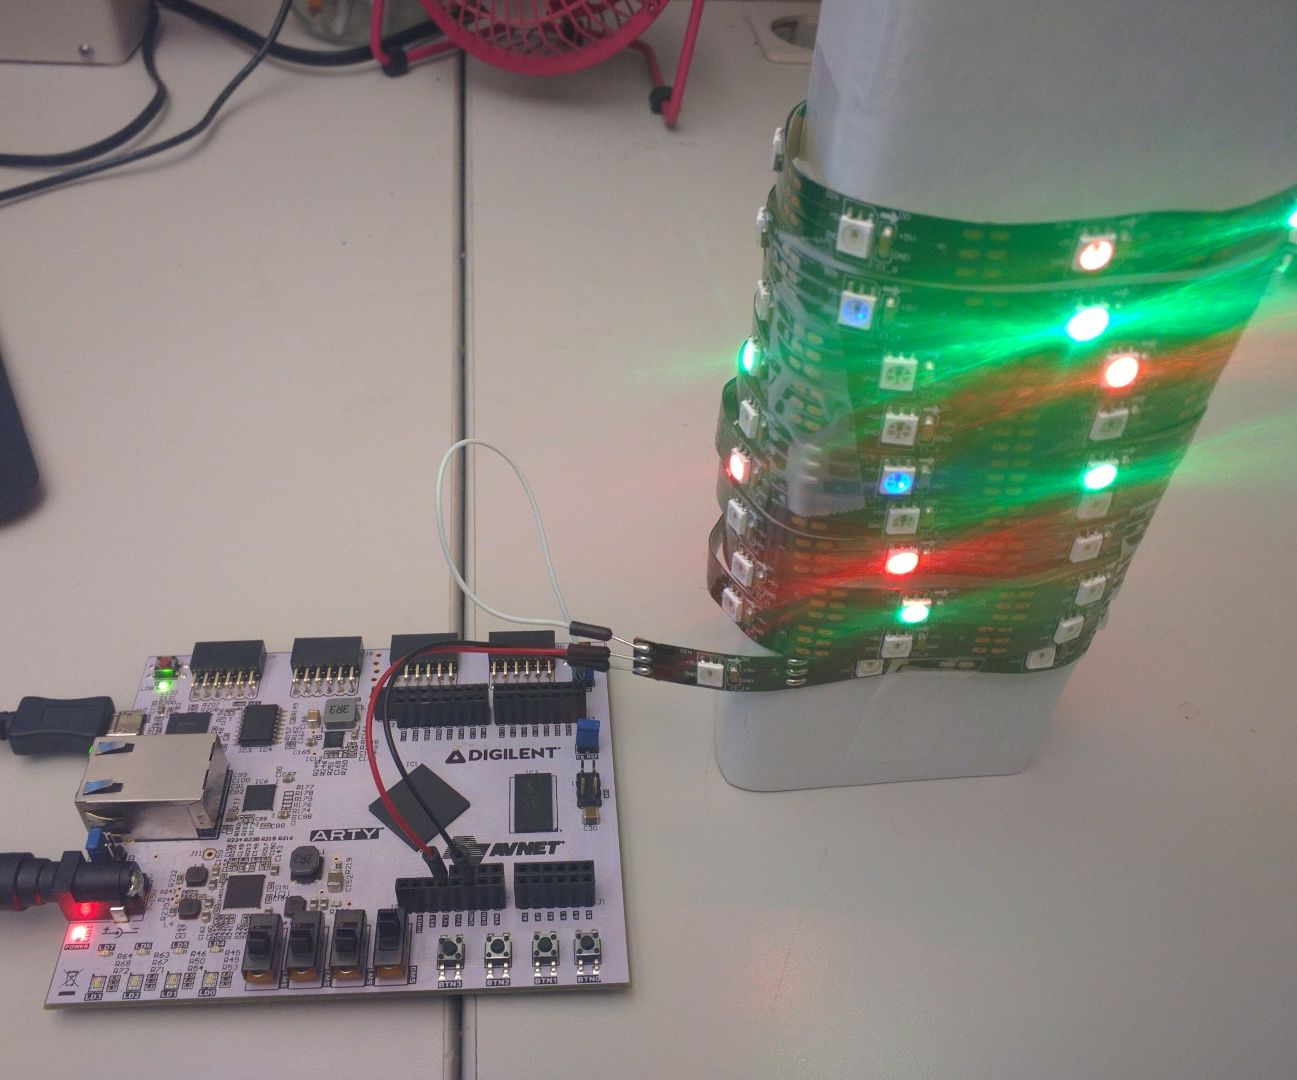 Addressable LEDs on the Arty FPGA board